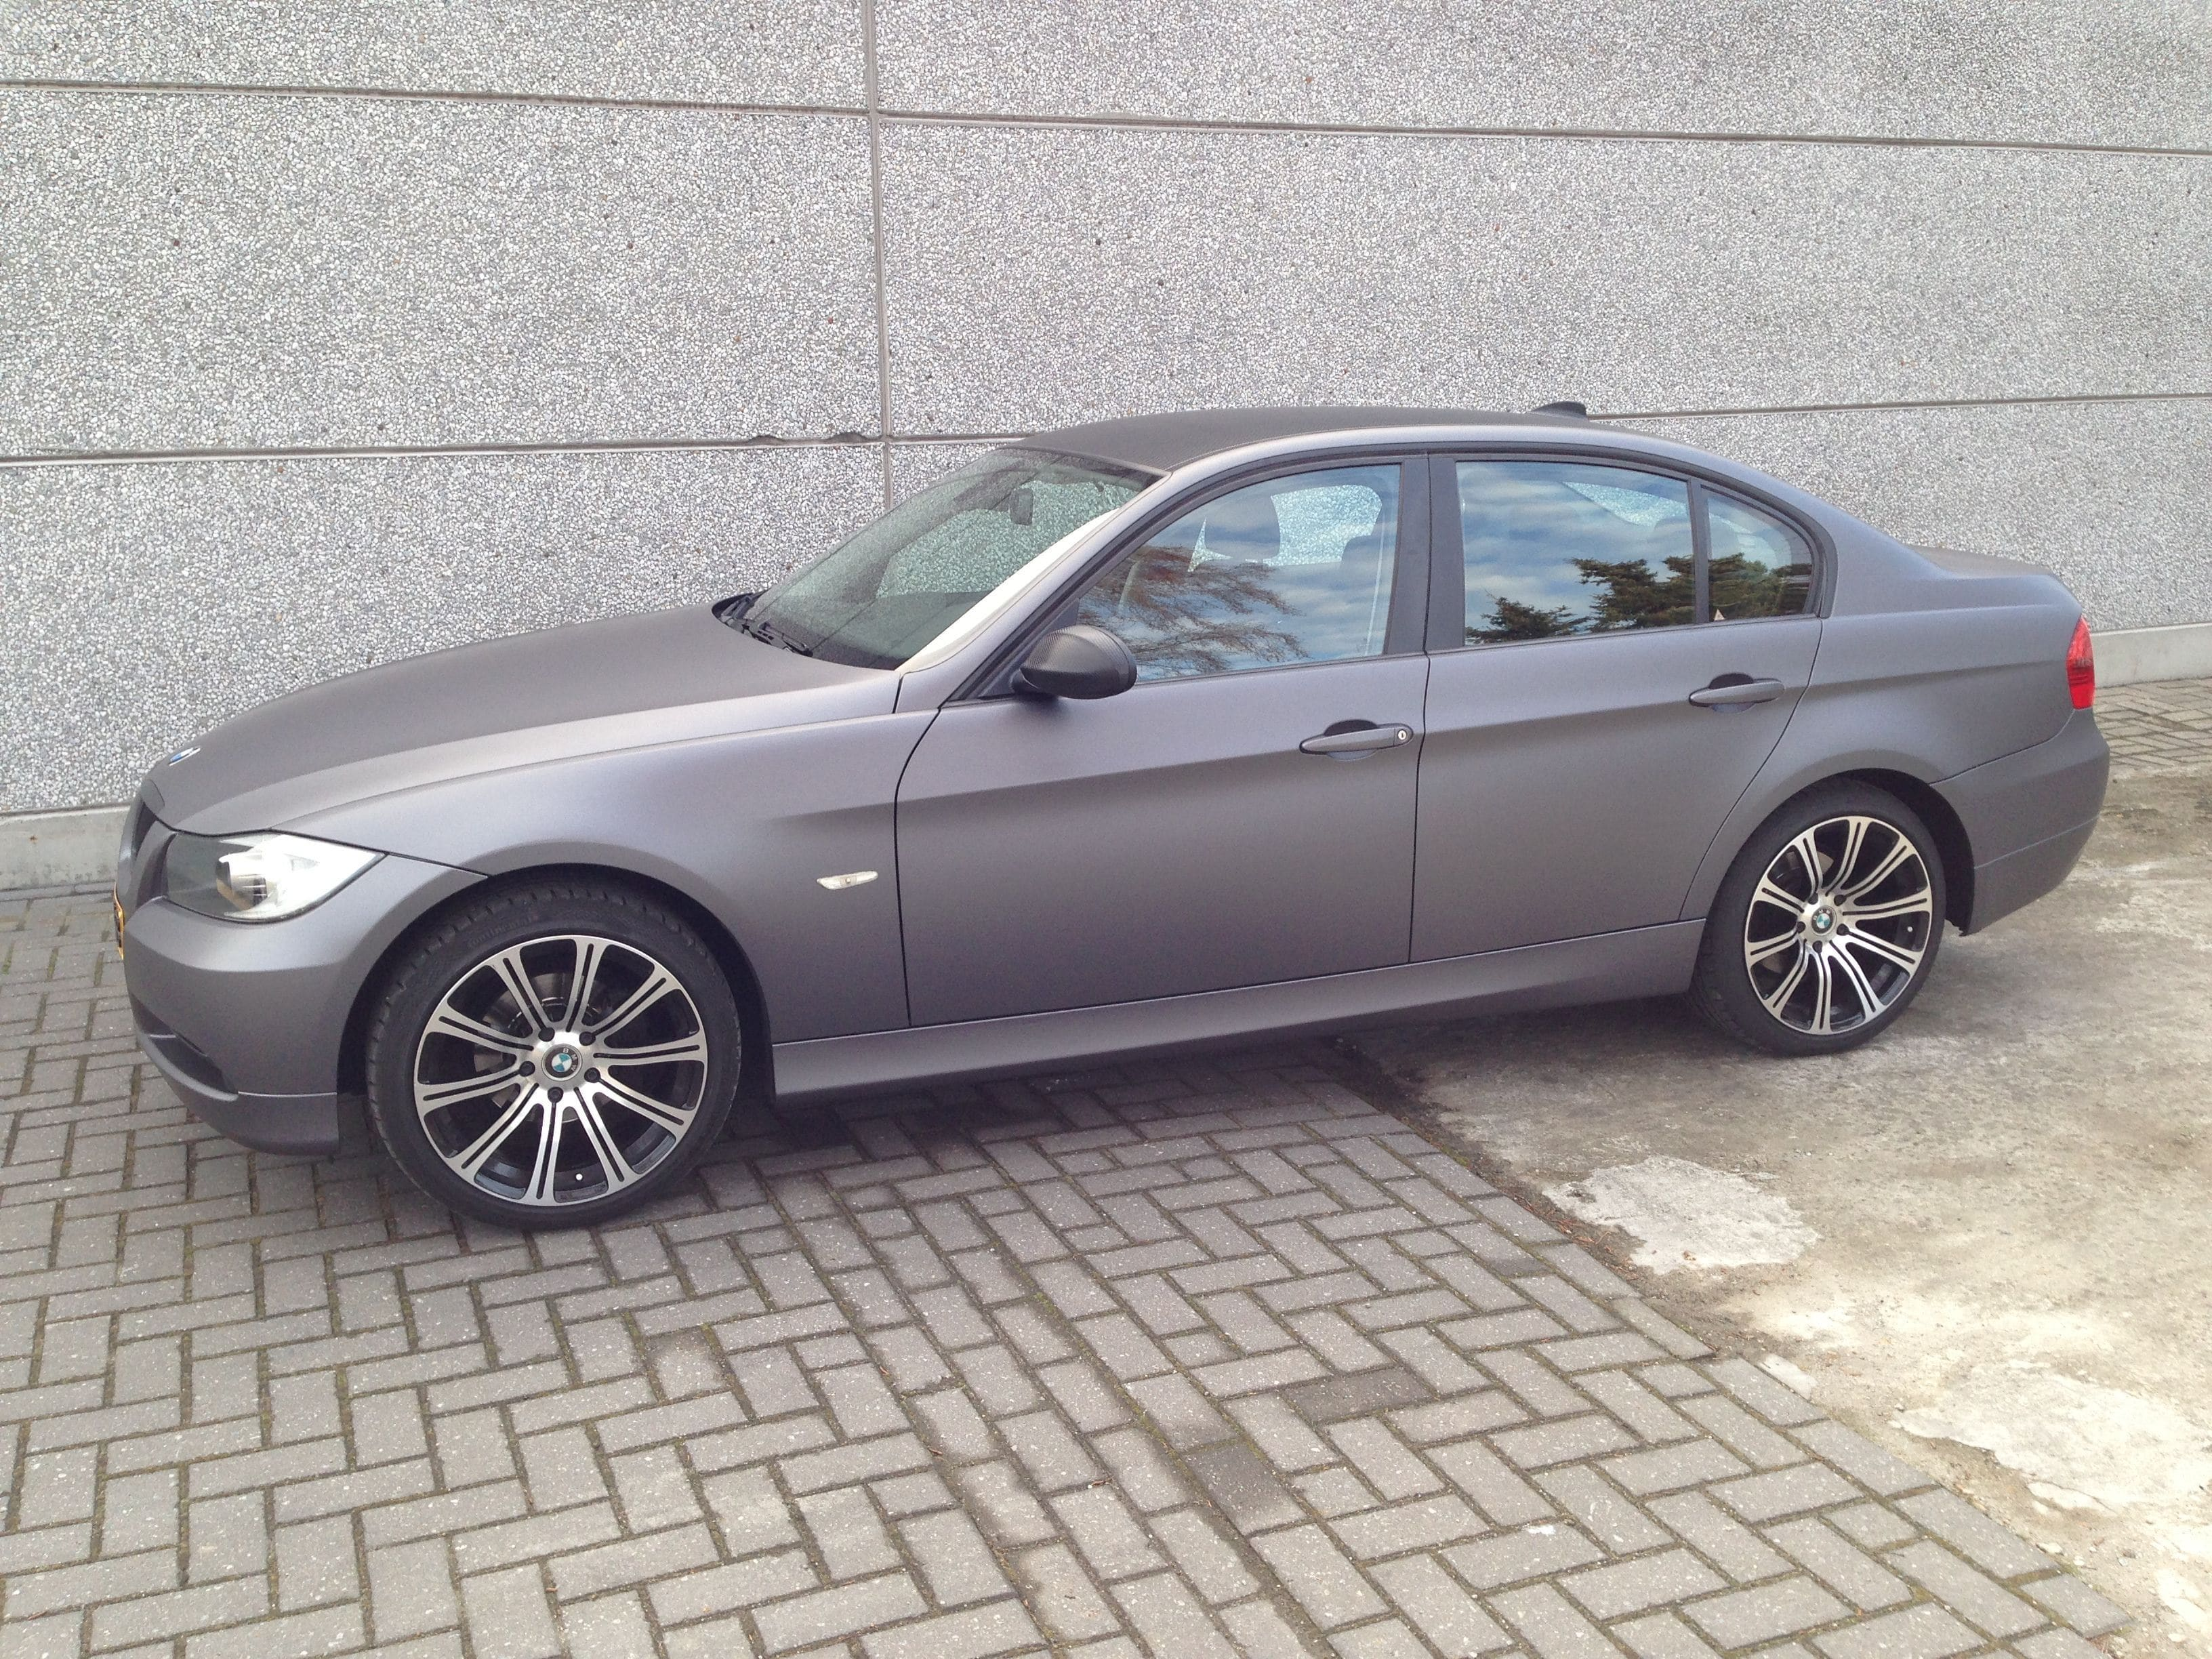 BMW E90 met Gunpowder Wrap, Carwrapping door Wrapmyride.nu Foto-nr:5391, ©2021